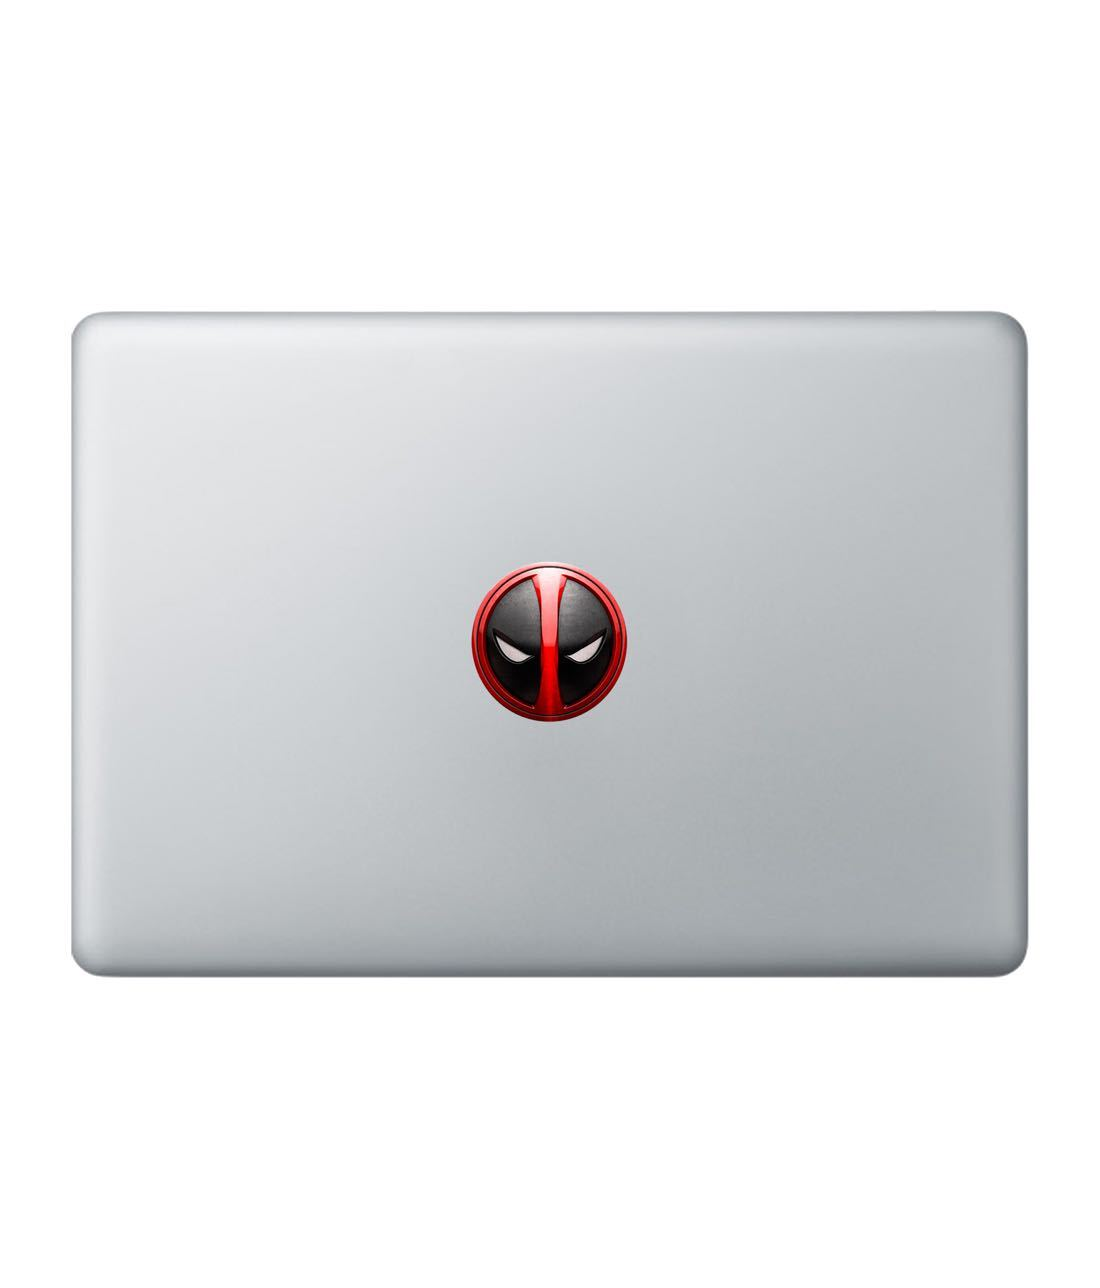 Minimalistic Deadpool Laptop Decal by Macmerise